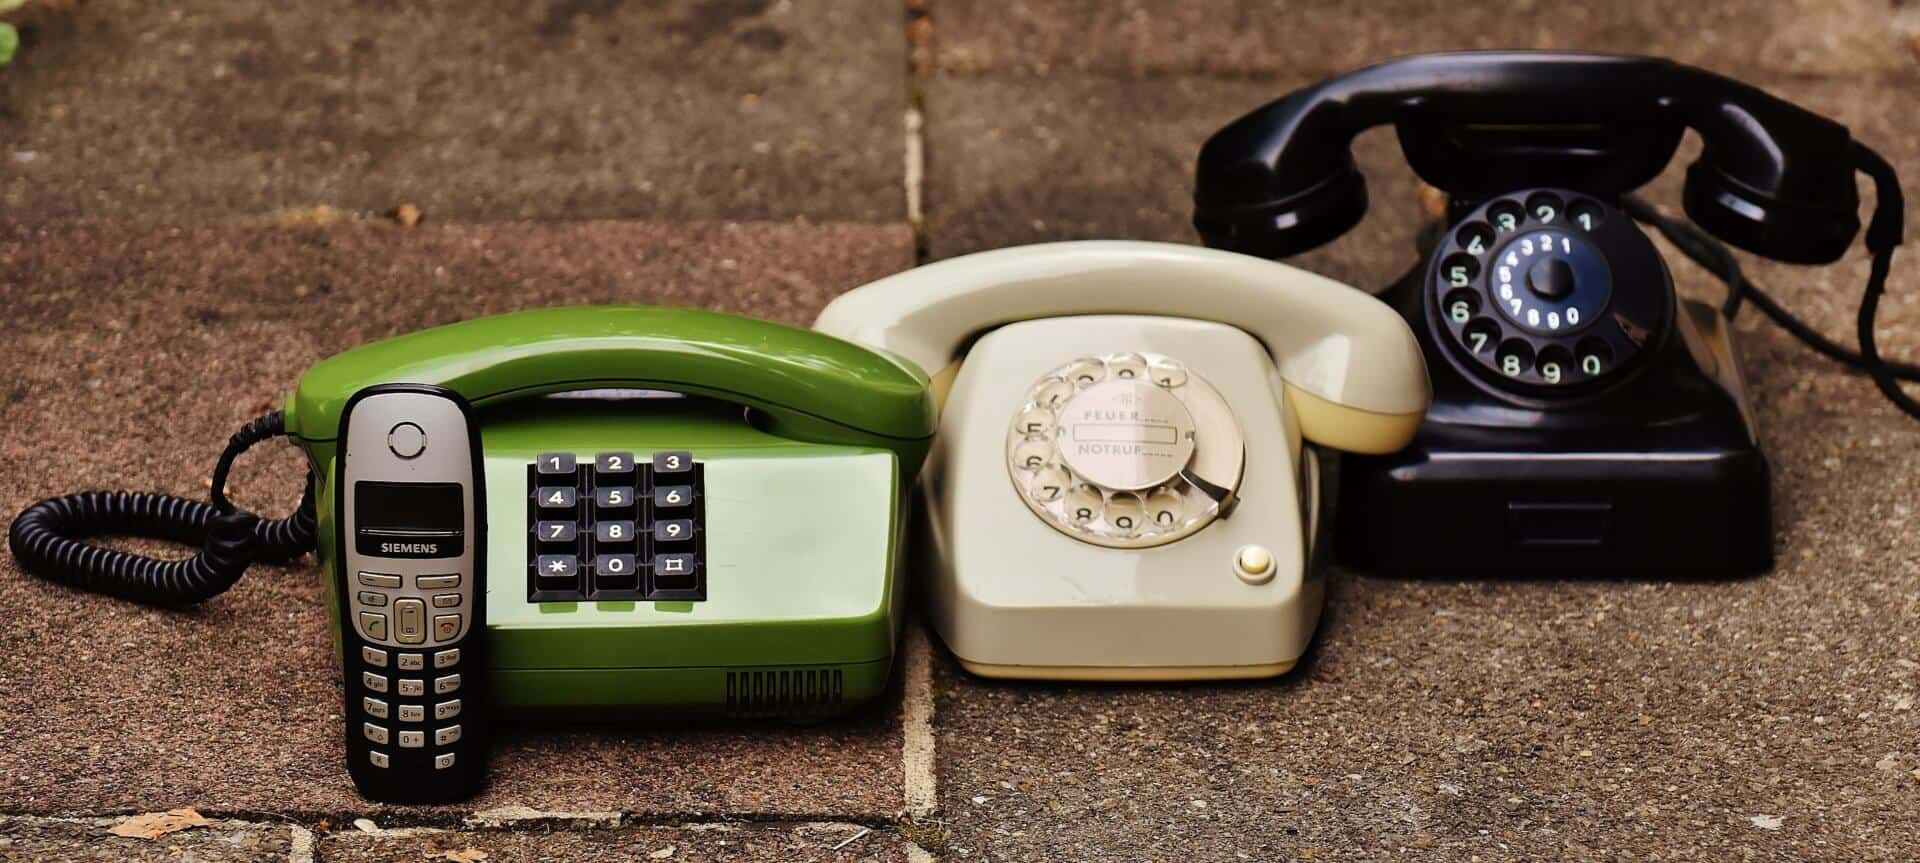 A set of telephones